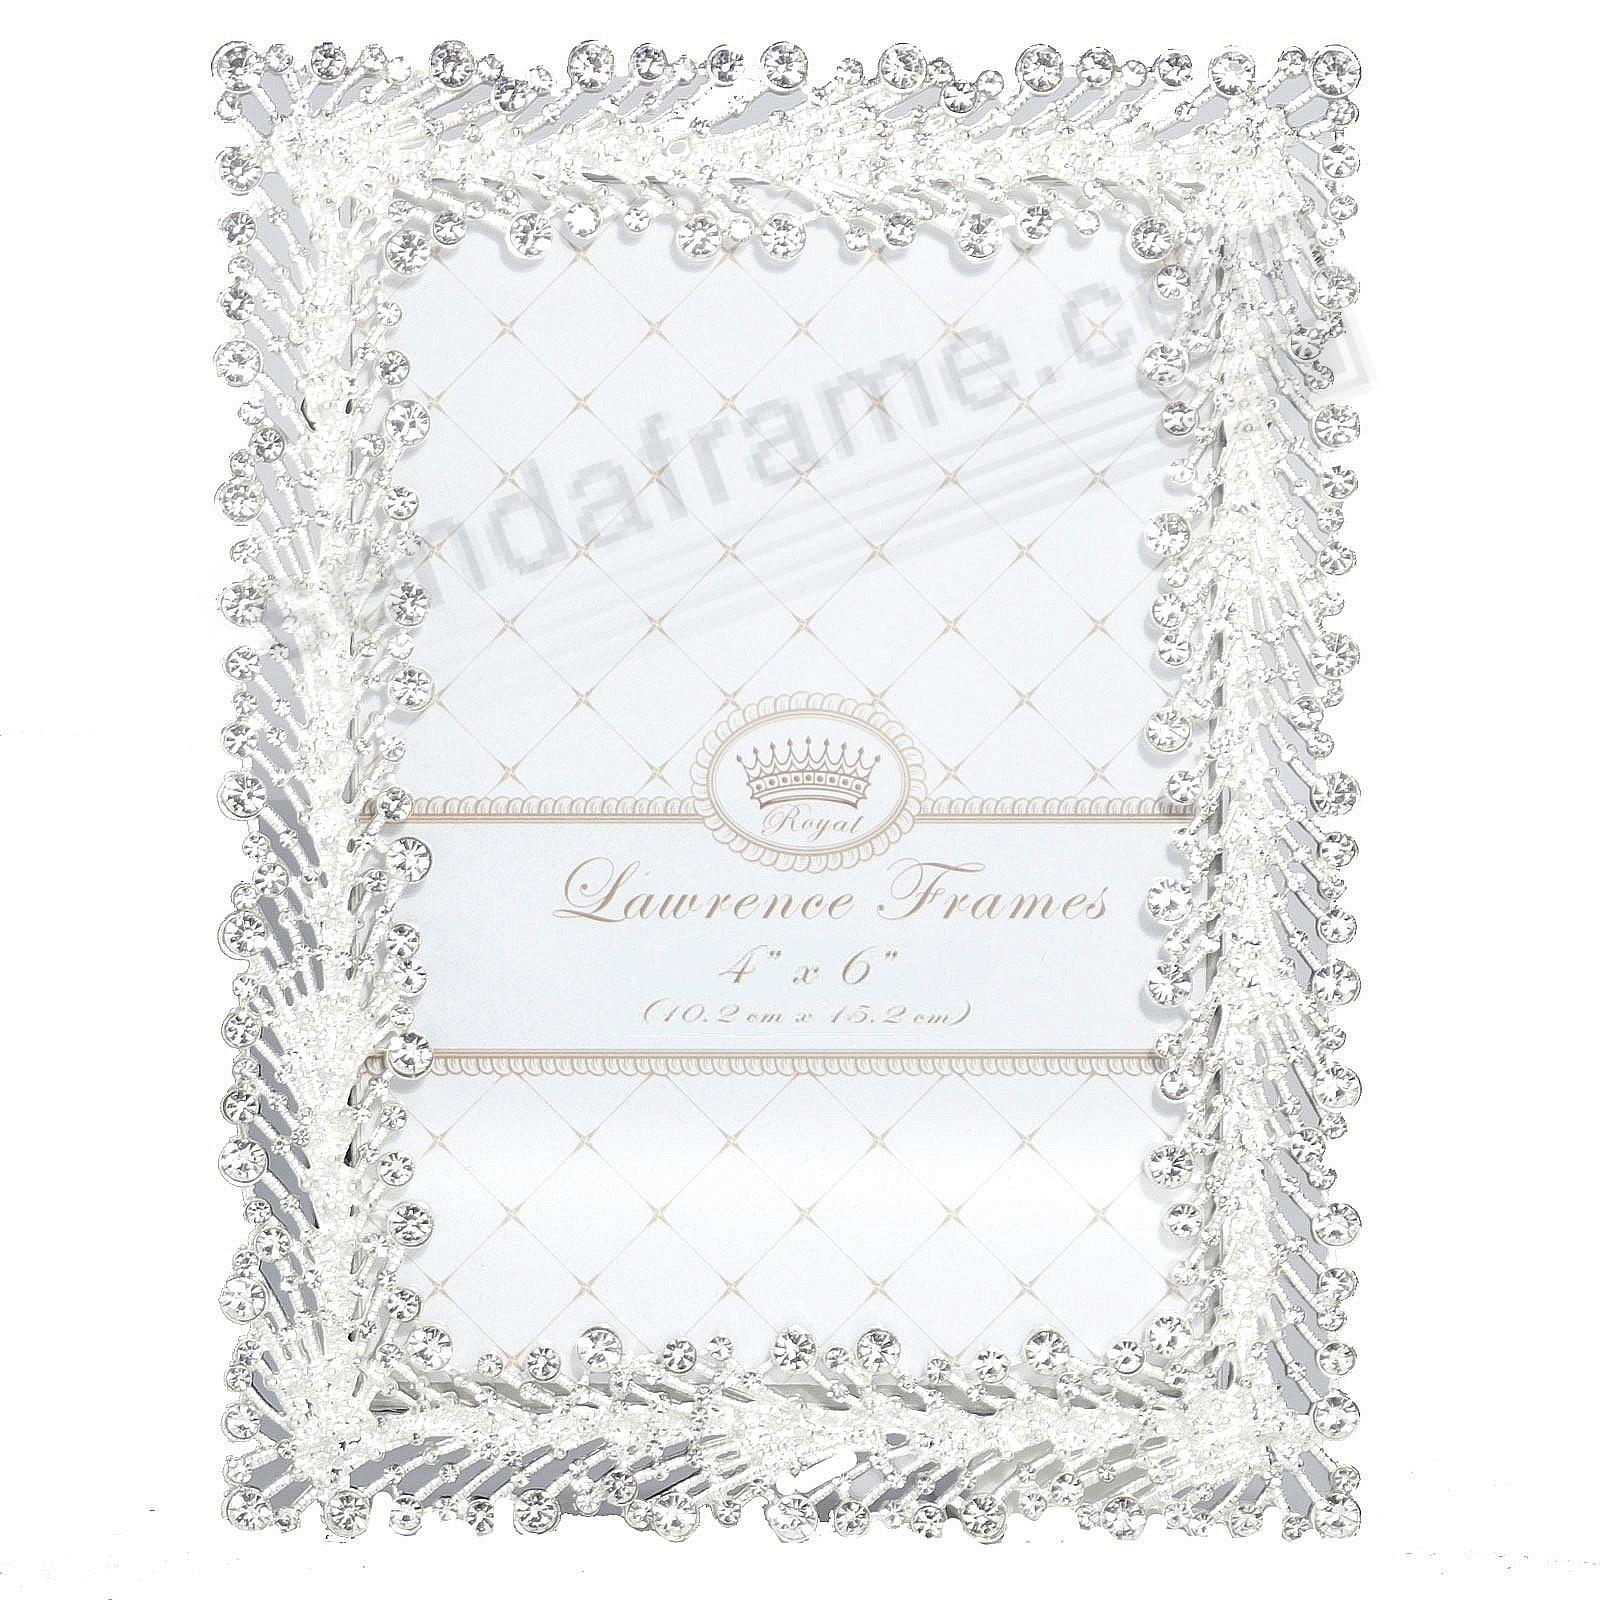 SPRAY WHITE CRYSTAL JEWELS + SILVER 4x6 frame